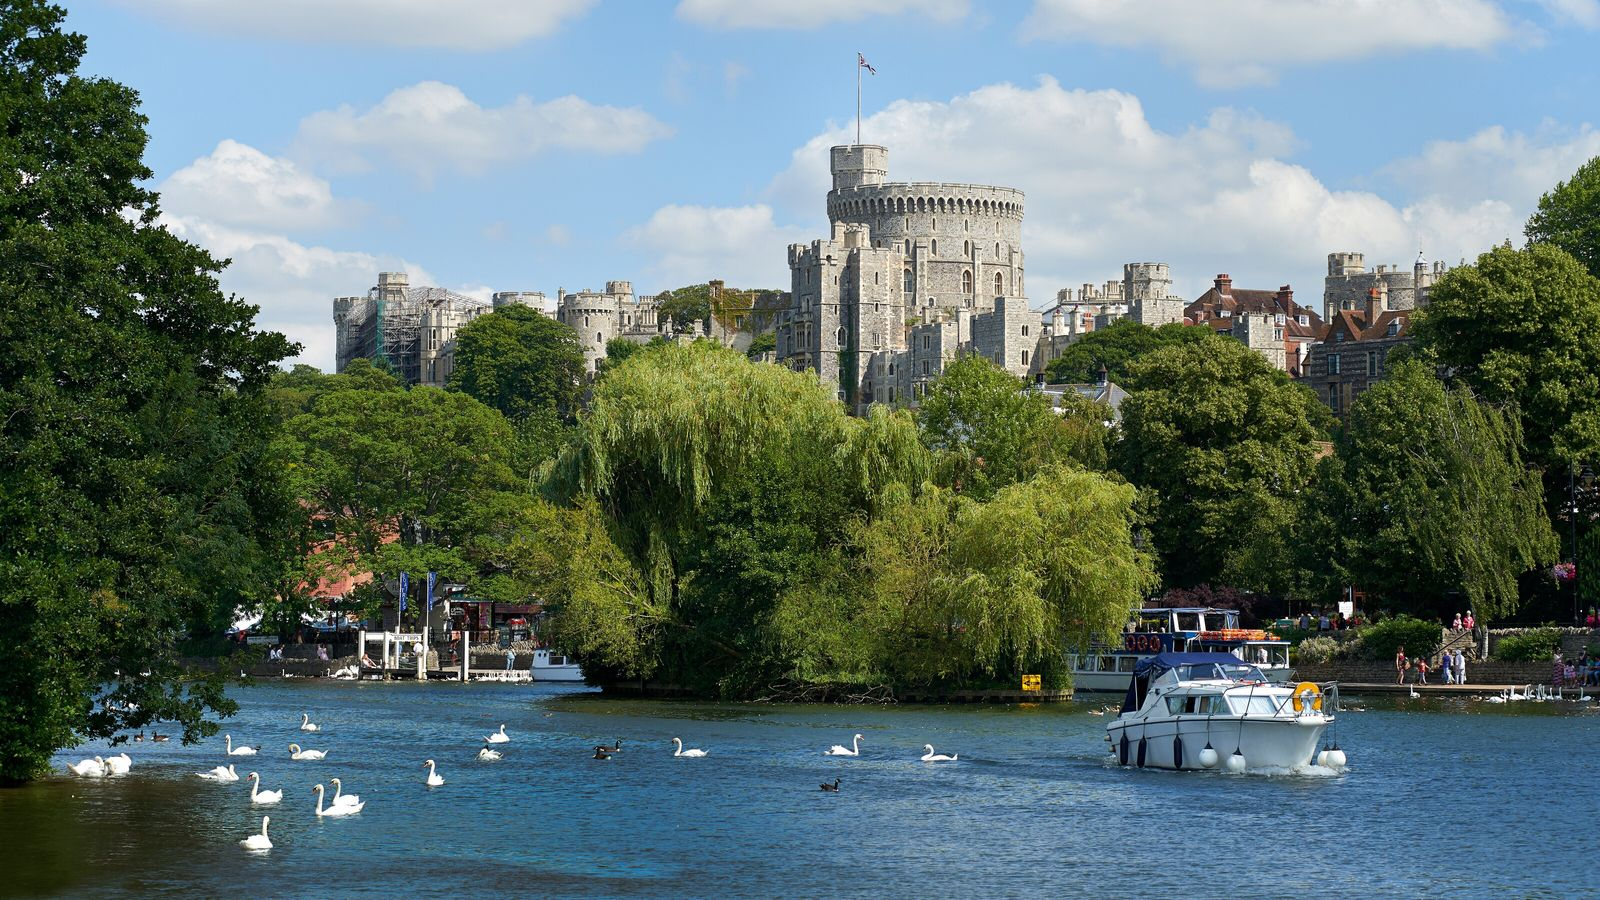 The picturesque castle-front stretch of the Thames Path